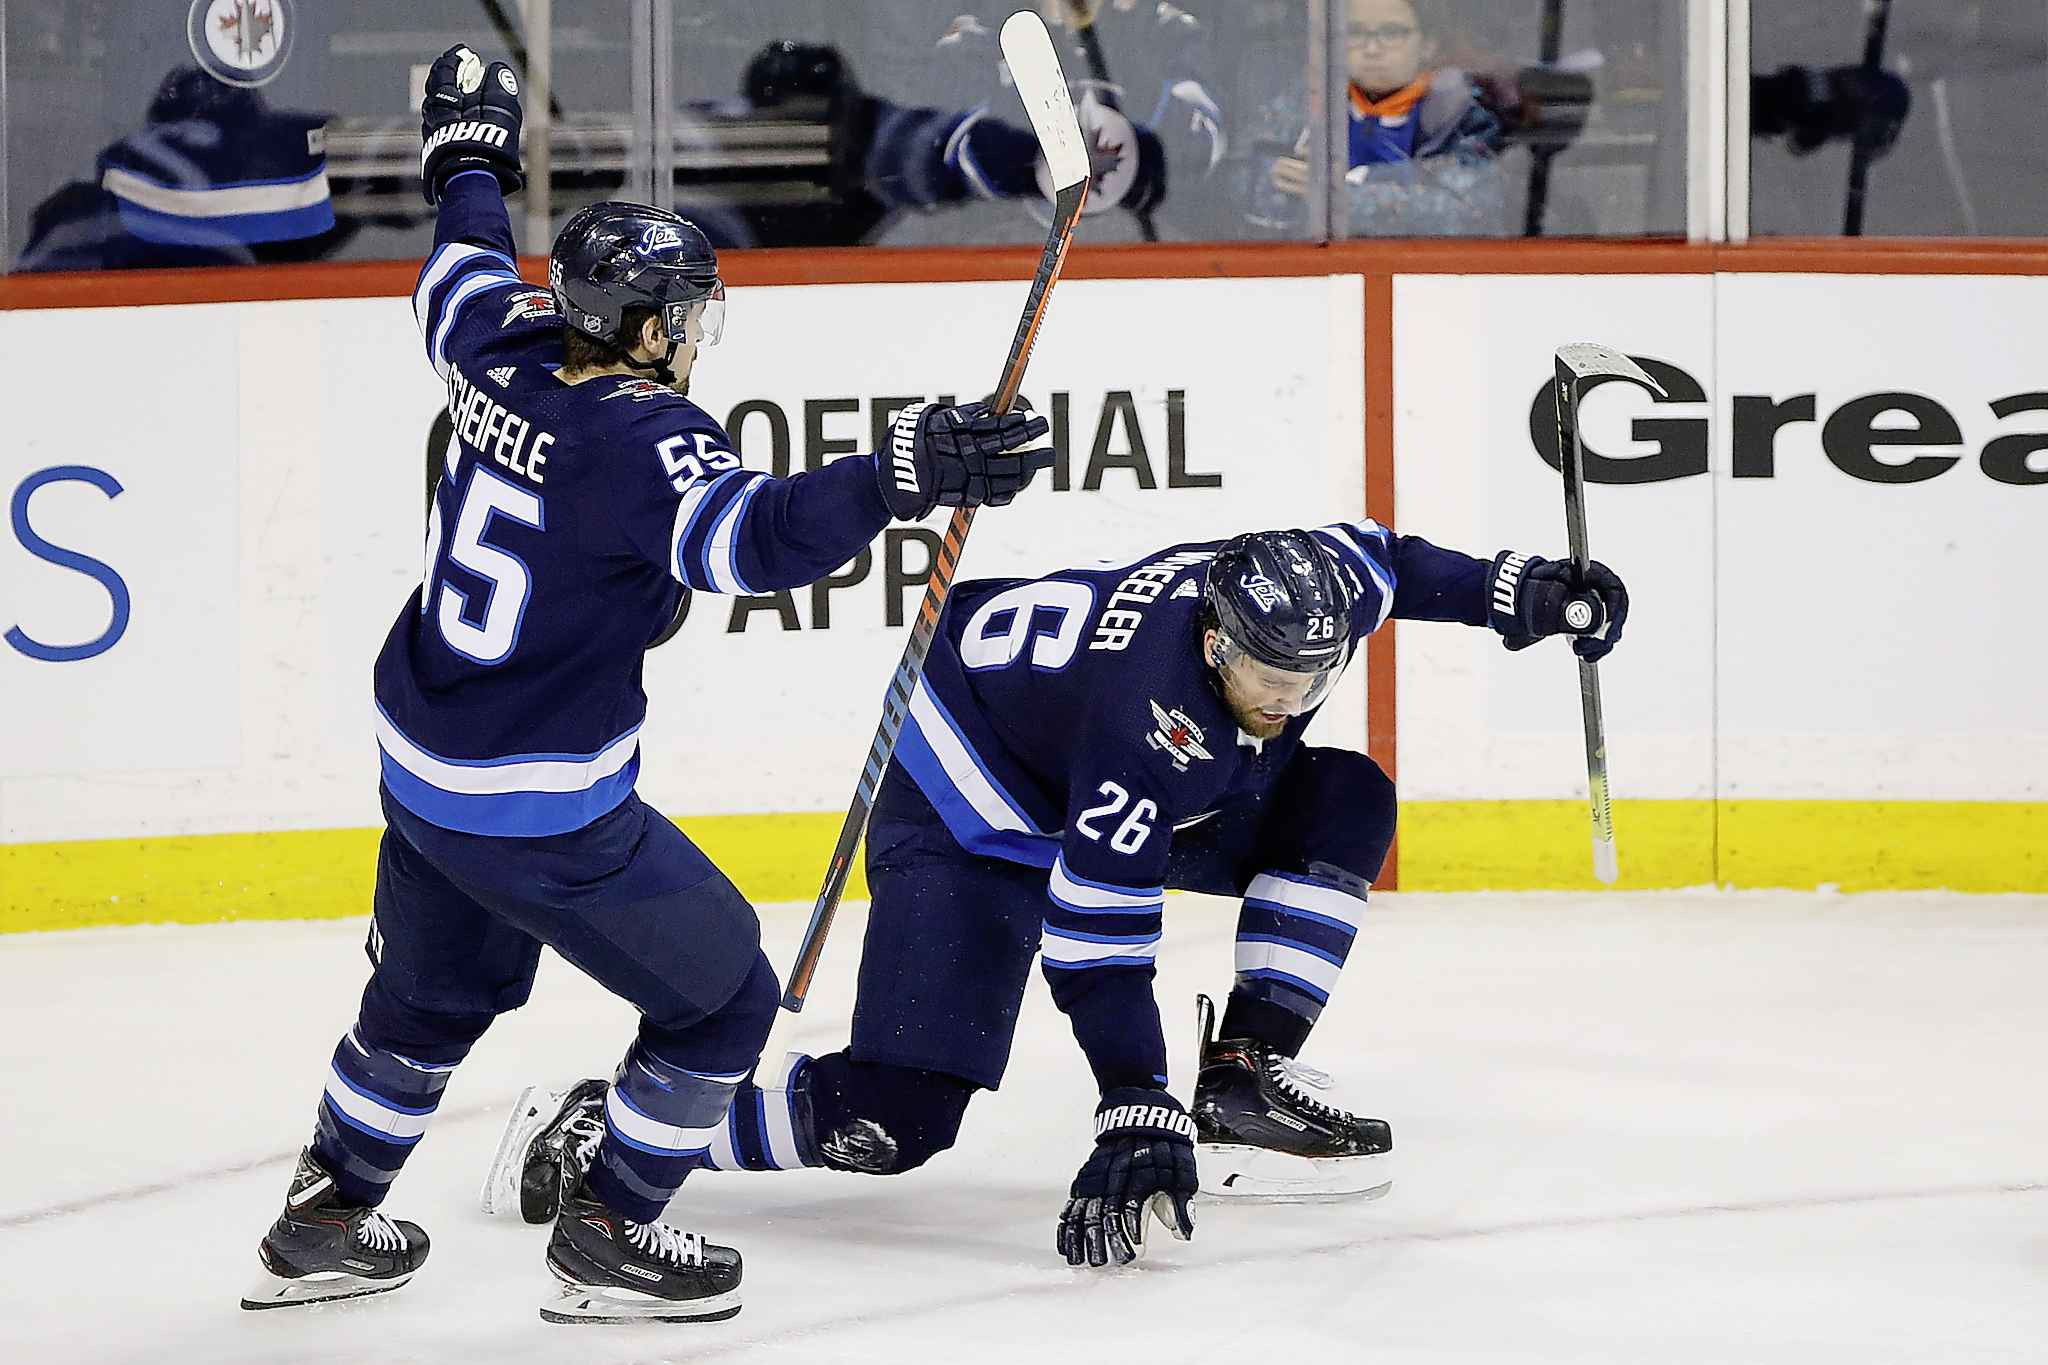 Blake Wheeler (right) and Mark Scheifele celebrate Wheeler's go-ahead goal at 14:09 of the third period. (John Woods / The Canadian Press)